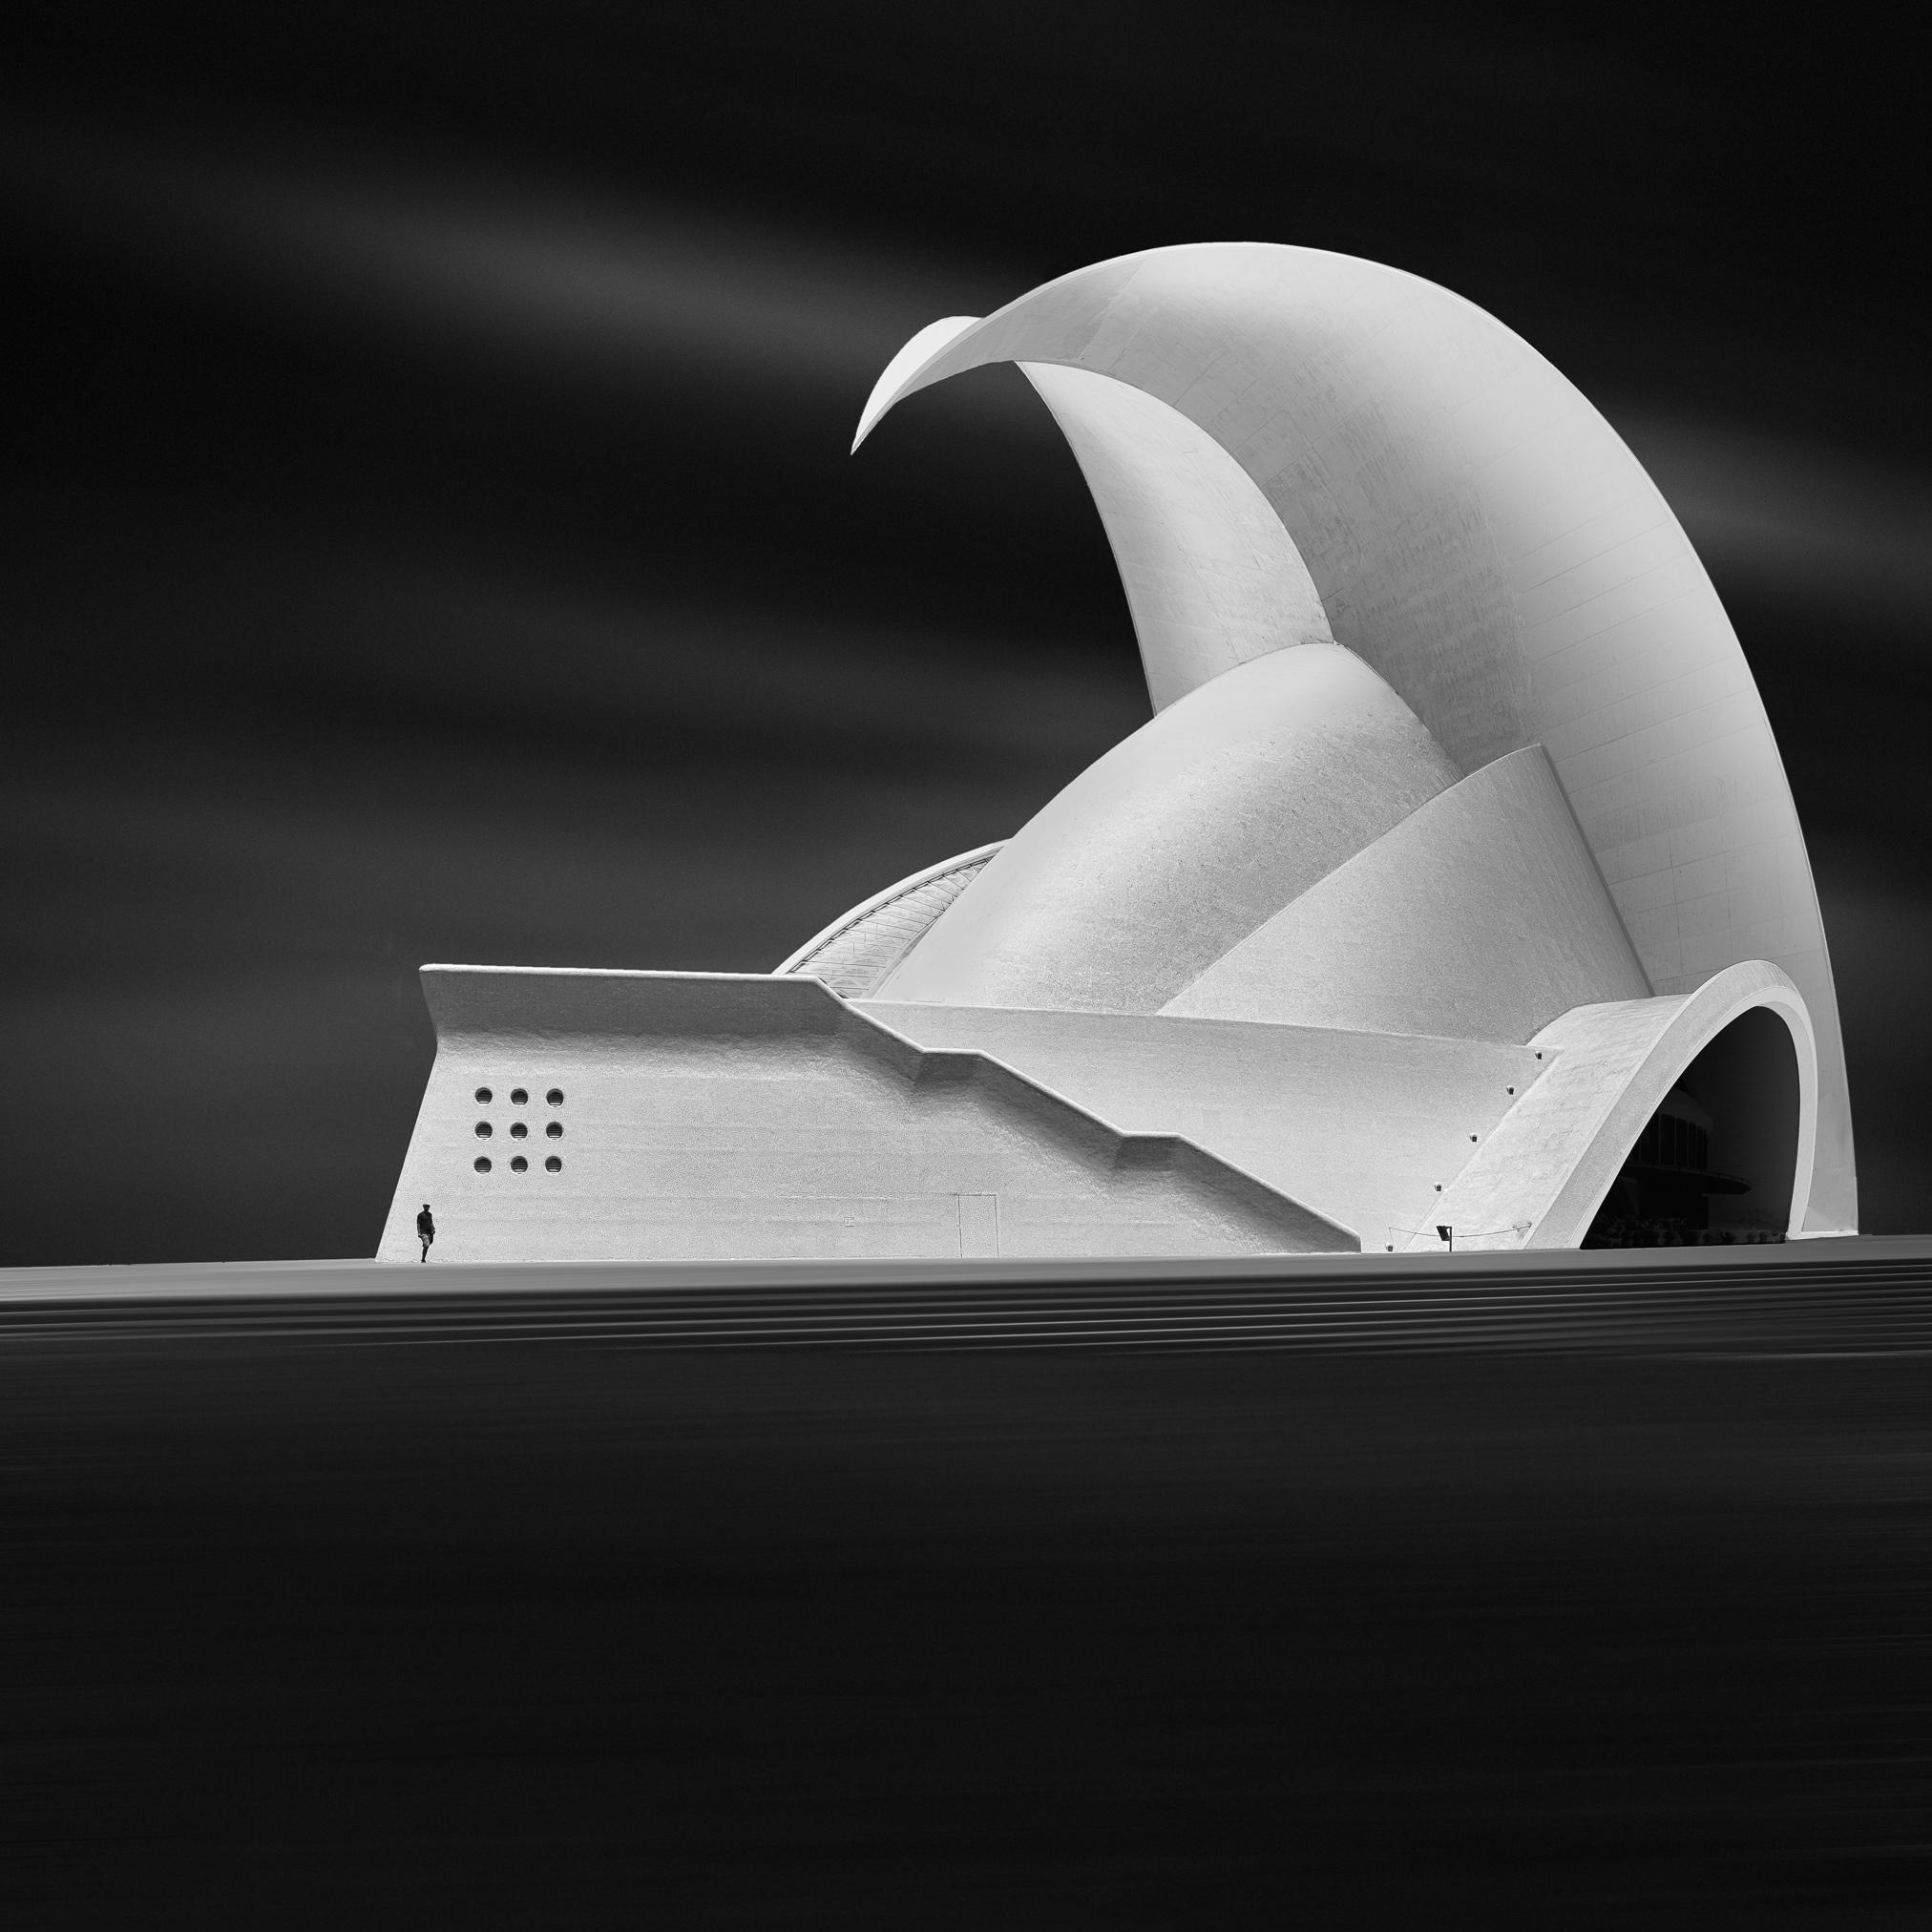 architectural photography anna laudan 3